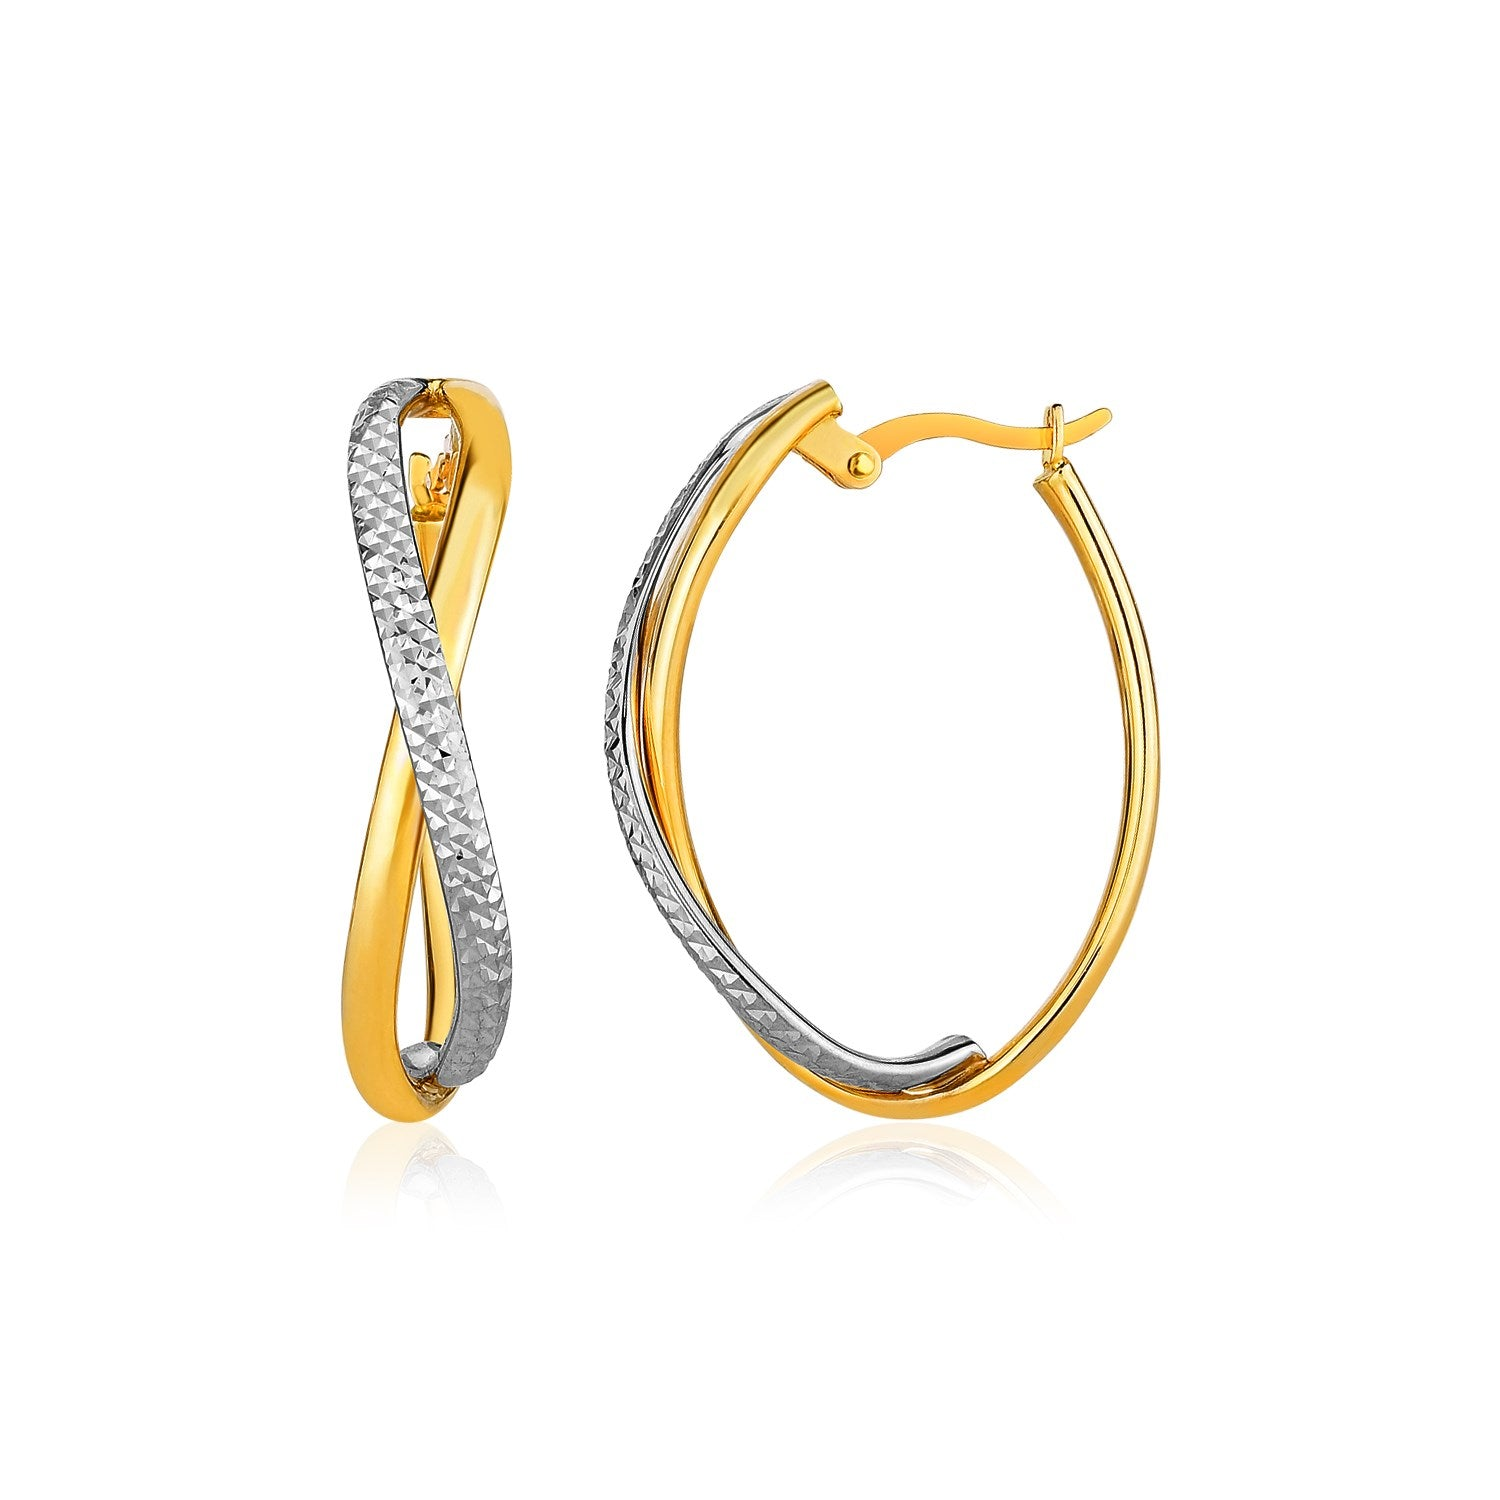 14K Two-Tone Gold Twisted Style Multi-Textured Hoop Earrings